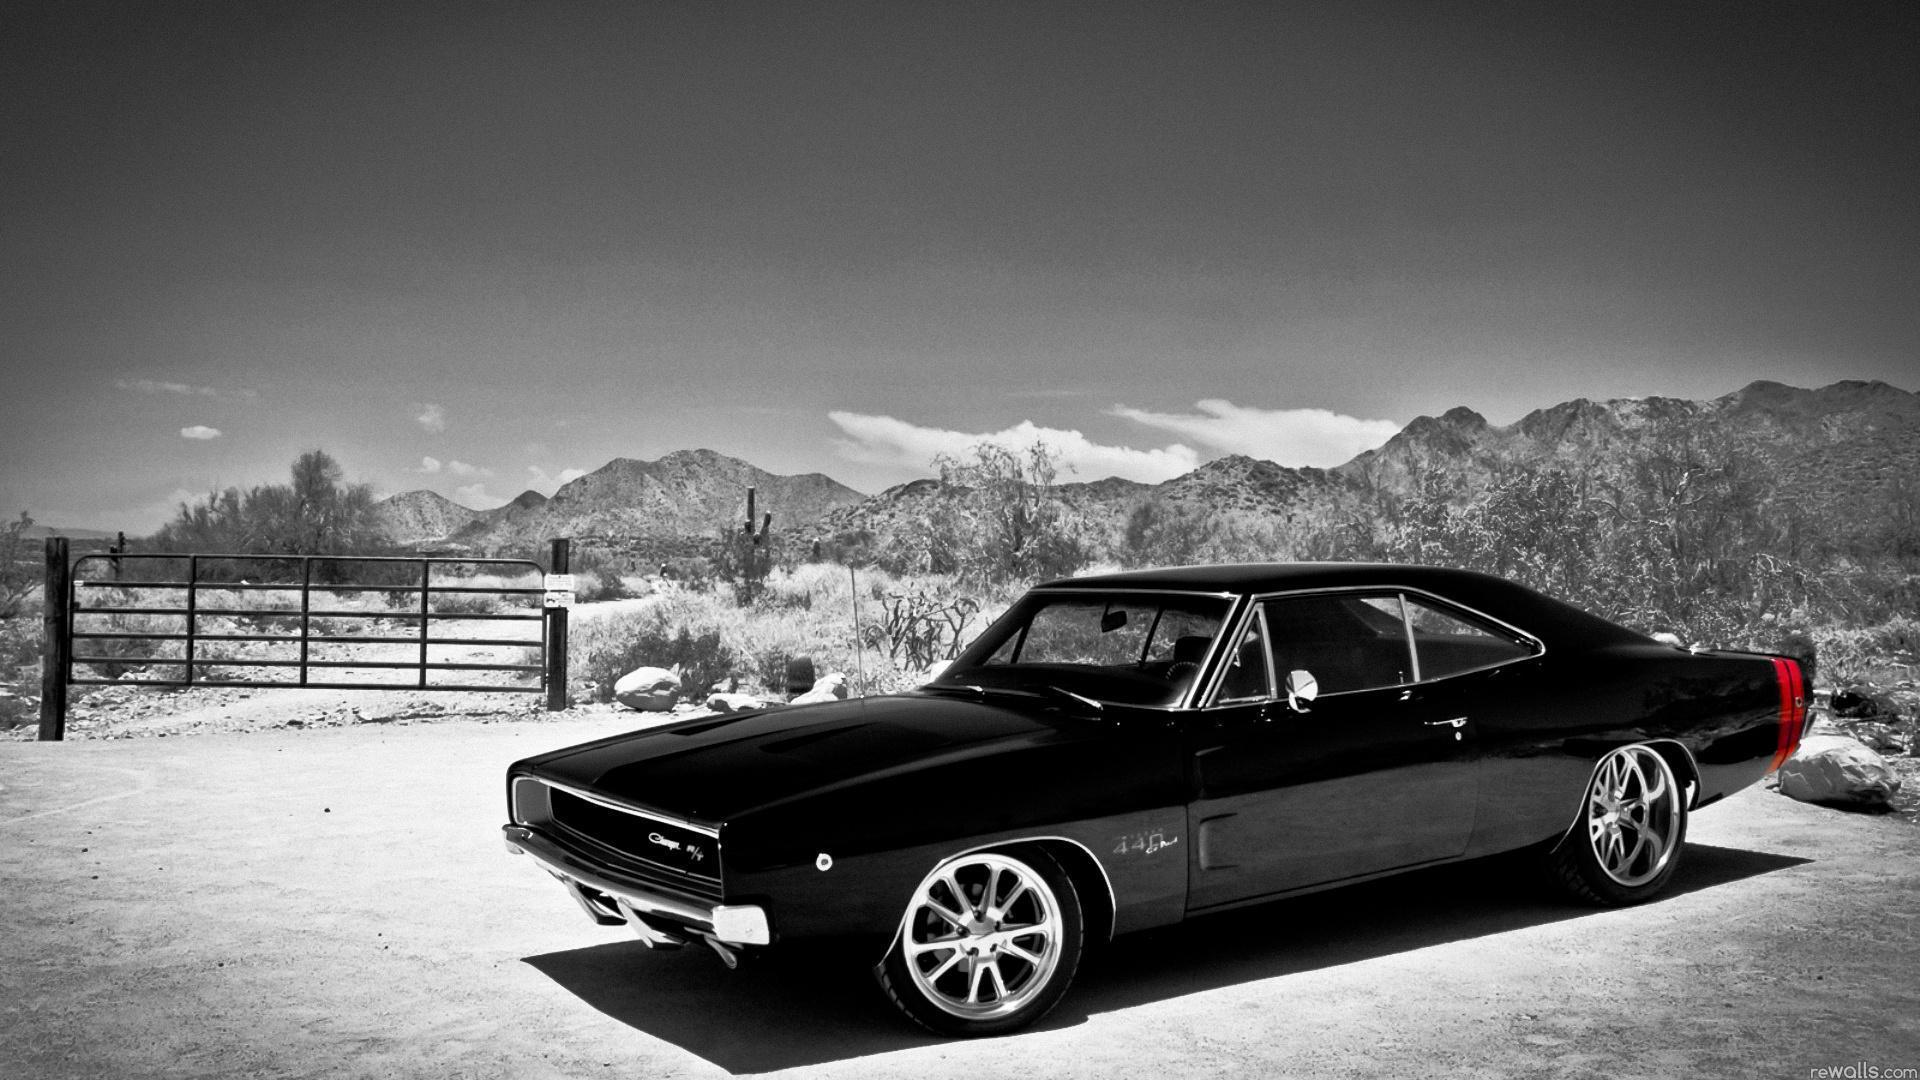 Muscle car wallpaper hd 1080p